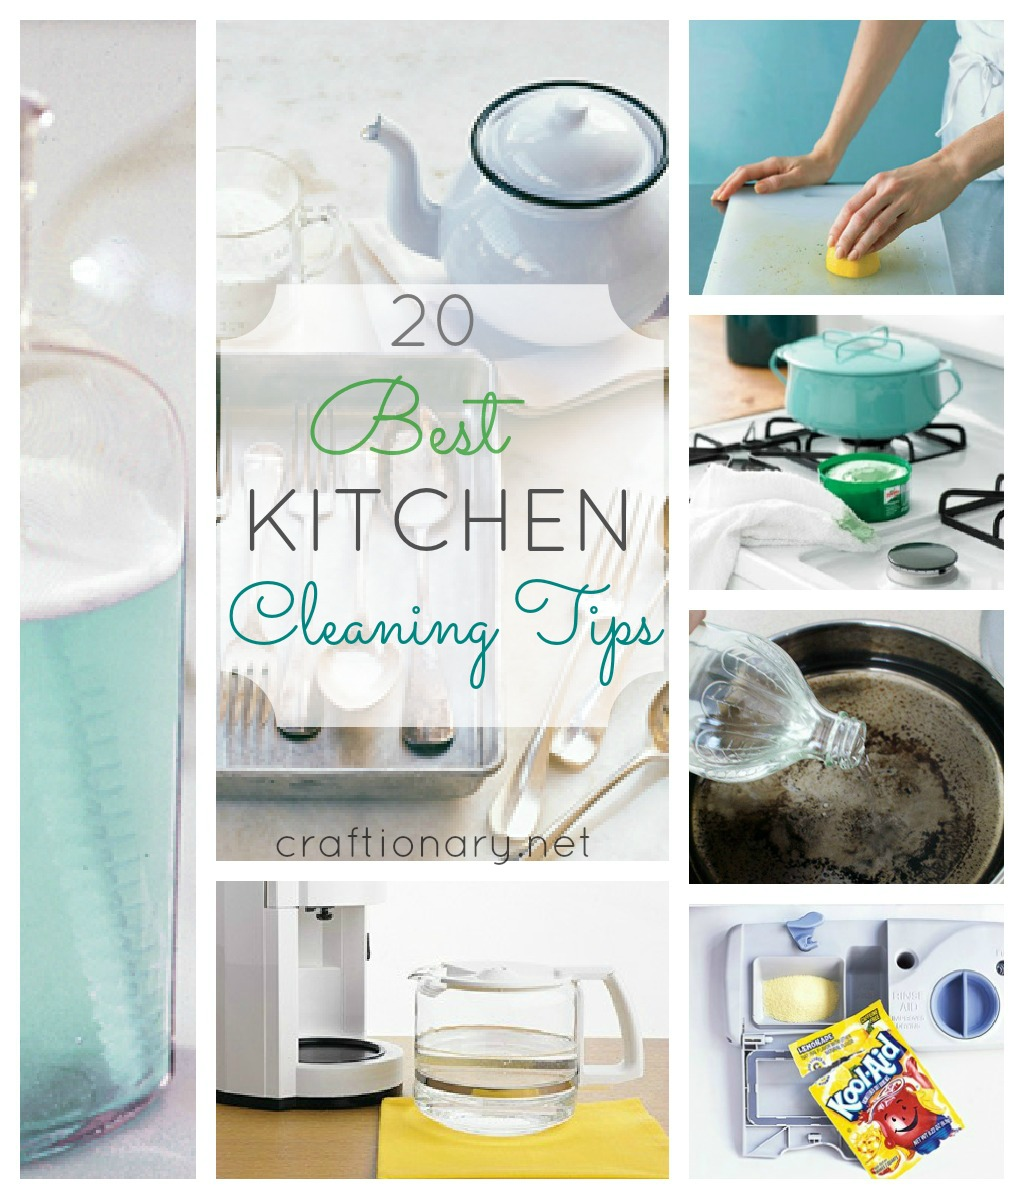 Kitchen Cleaning: Craftionary